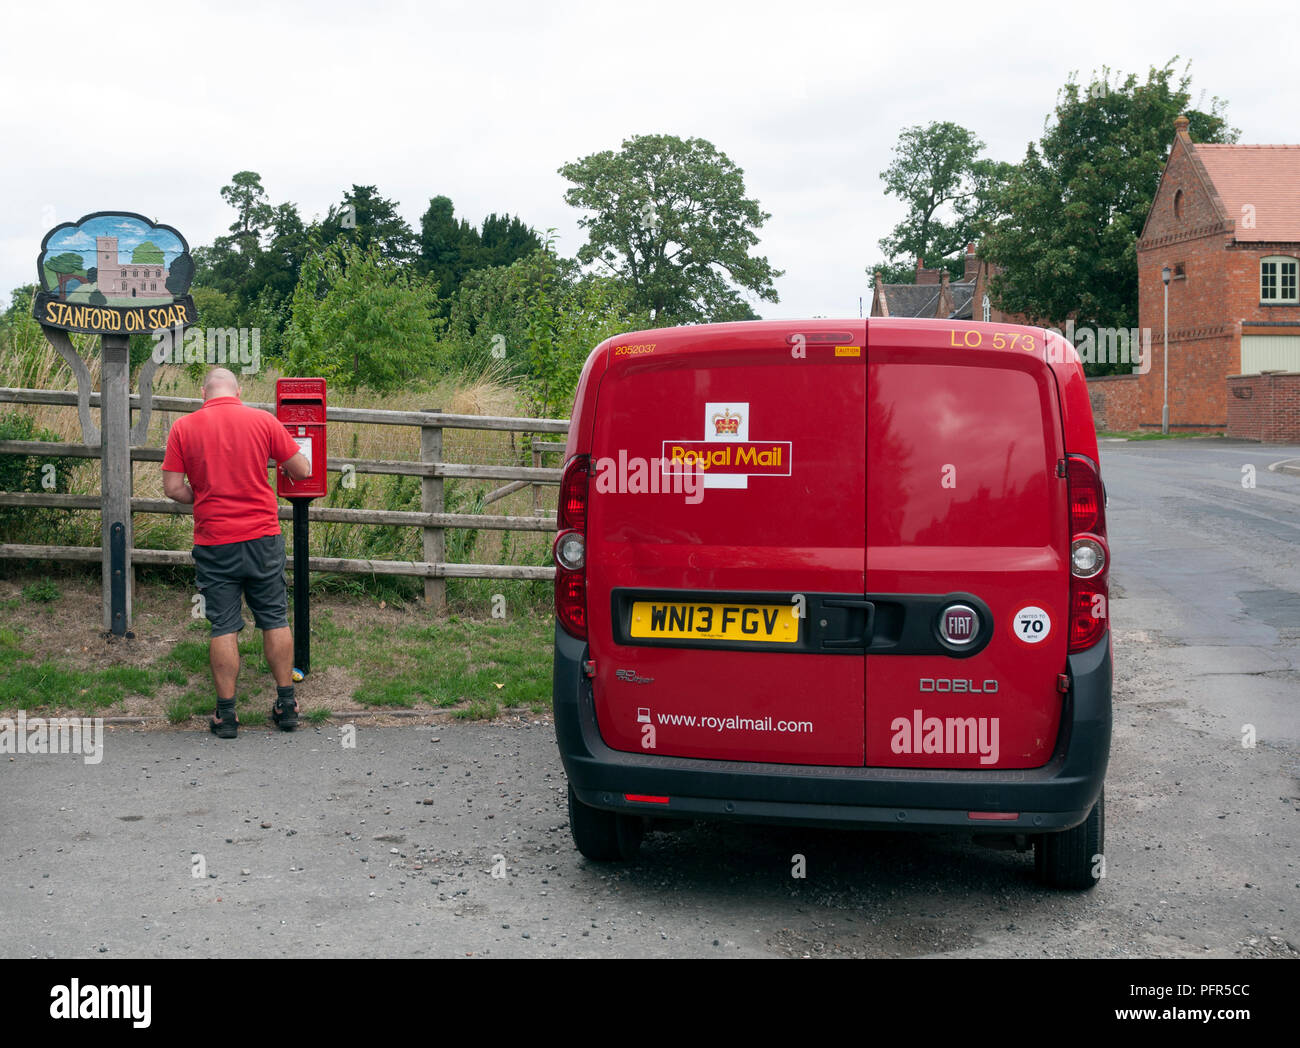 A postman emptying a postbox, Stanford-on-Soar, Nottinghamshire, England, UK - Stock Image